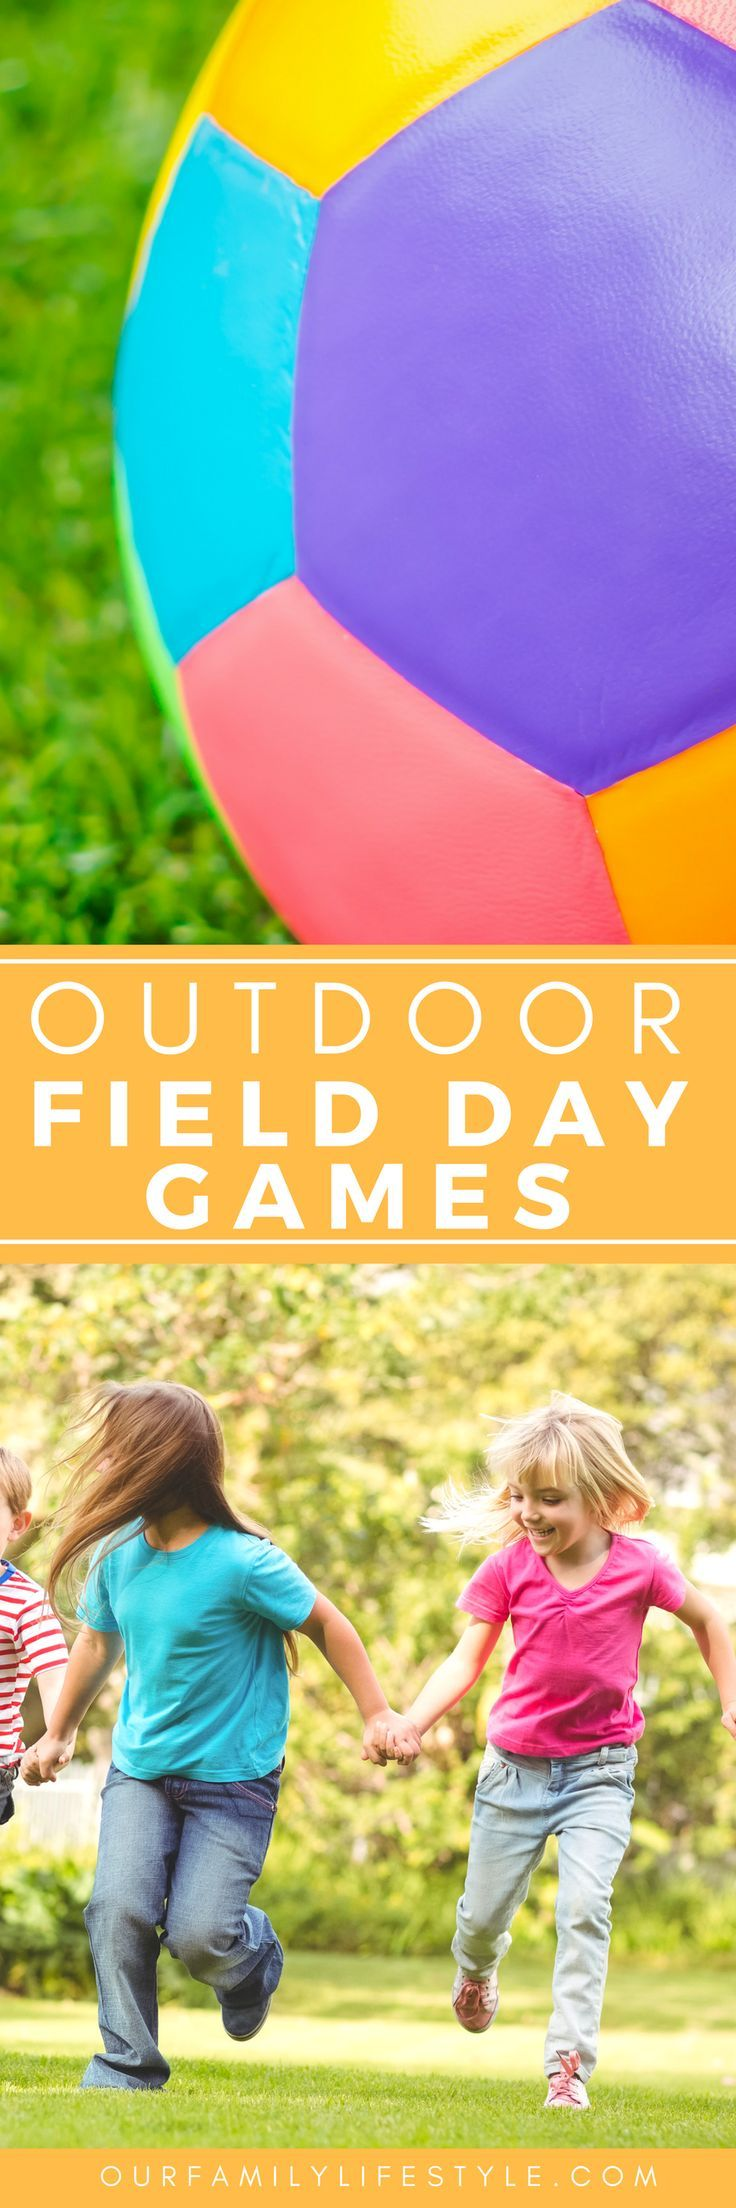 17 Outdoor Field Day Games for Kids that include a water balloon toss, goal kick, water relay, balloon pop and list of more fun outside games.